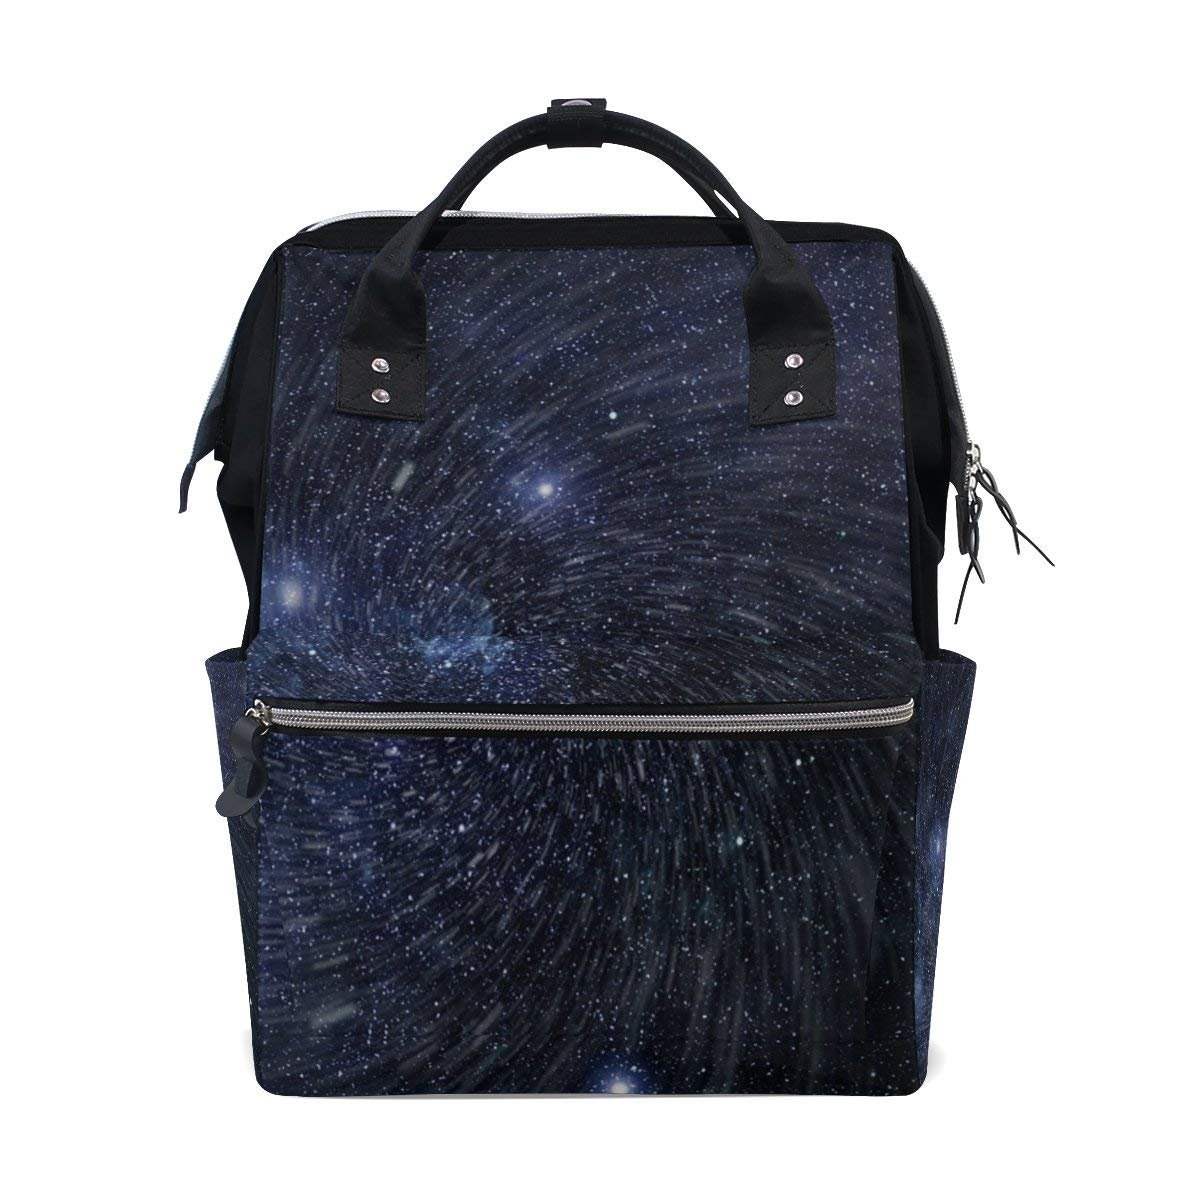 Starry Stars In Space Diaper Bags Mummy Backpack Multi Functions Large Capacity Nappy Bag Nursing Bag for Baby Care for Traveling